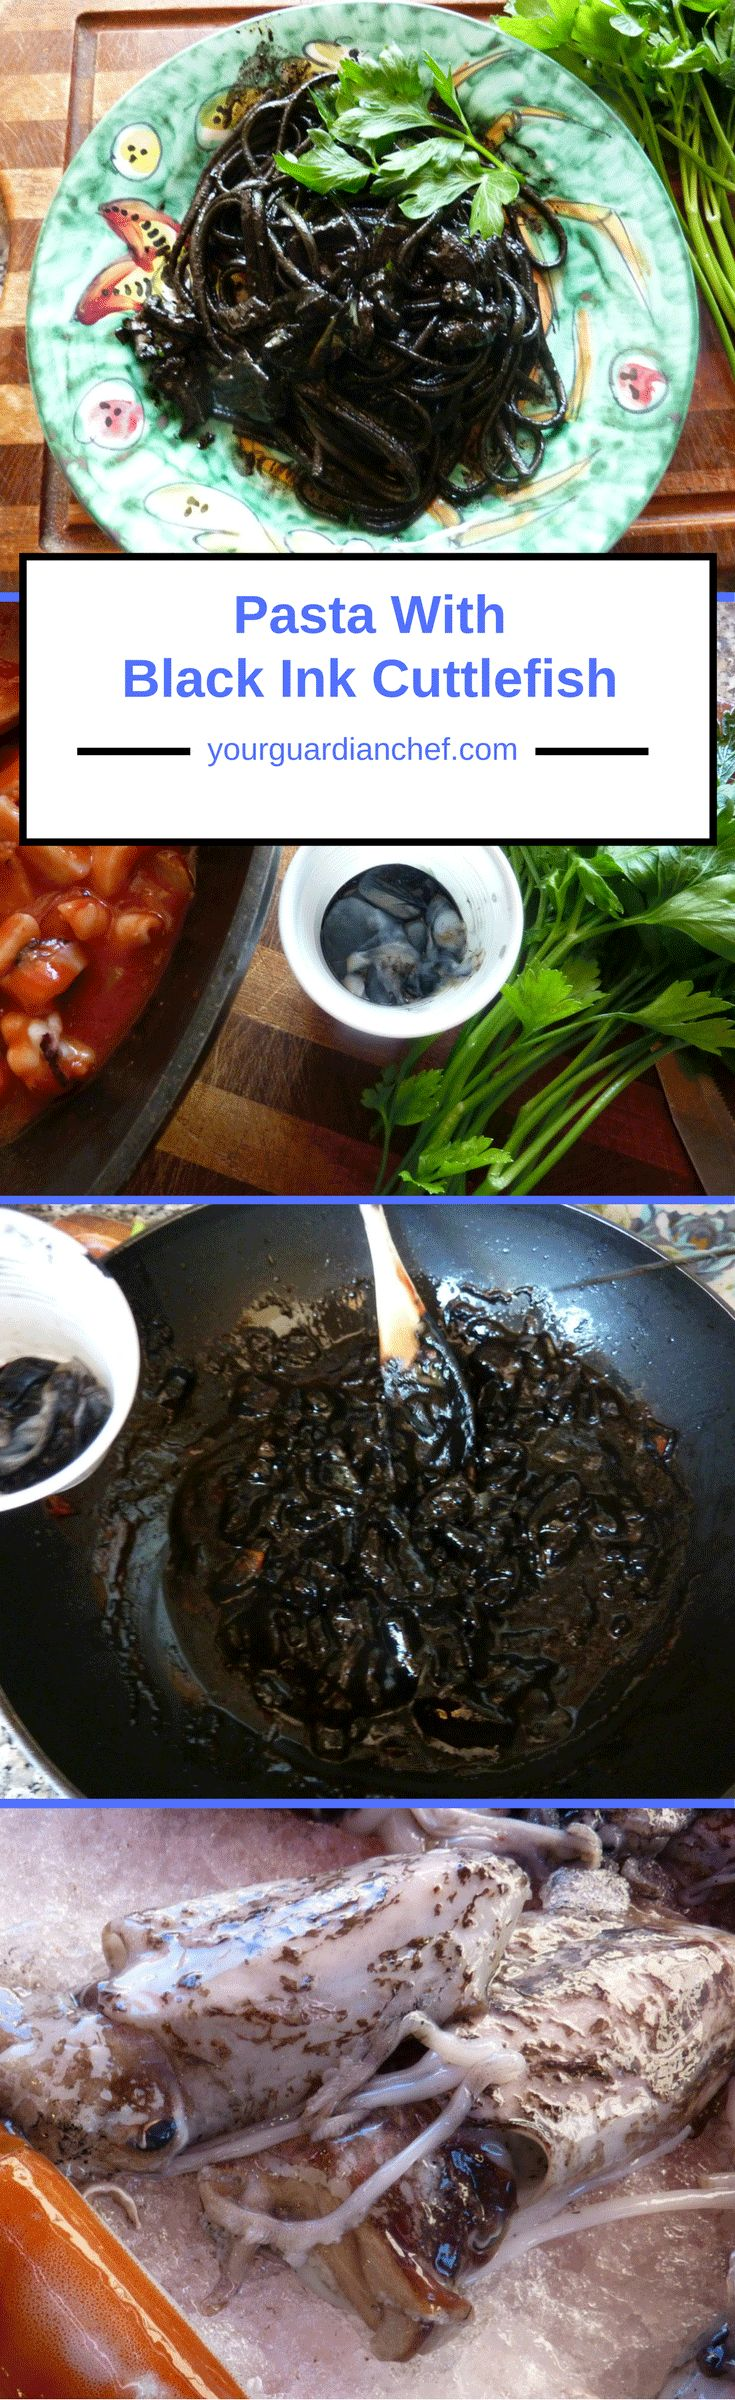 Pasta With Black Ink Cuttlefish an Italian classic - Your Guardian Chef #tradition #Italian #seafood #blackink